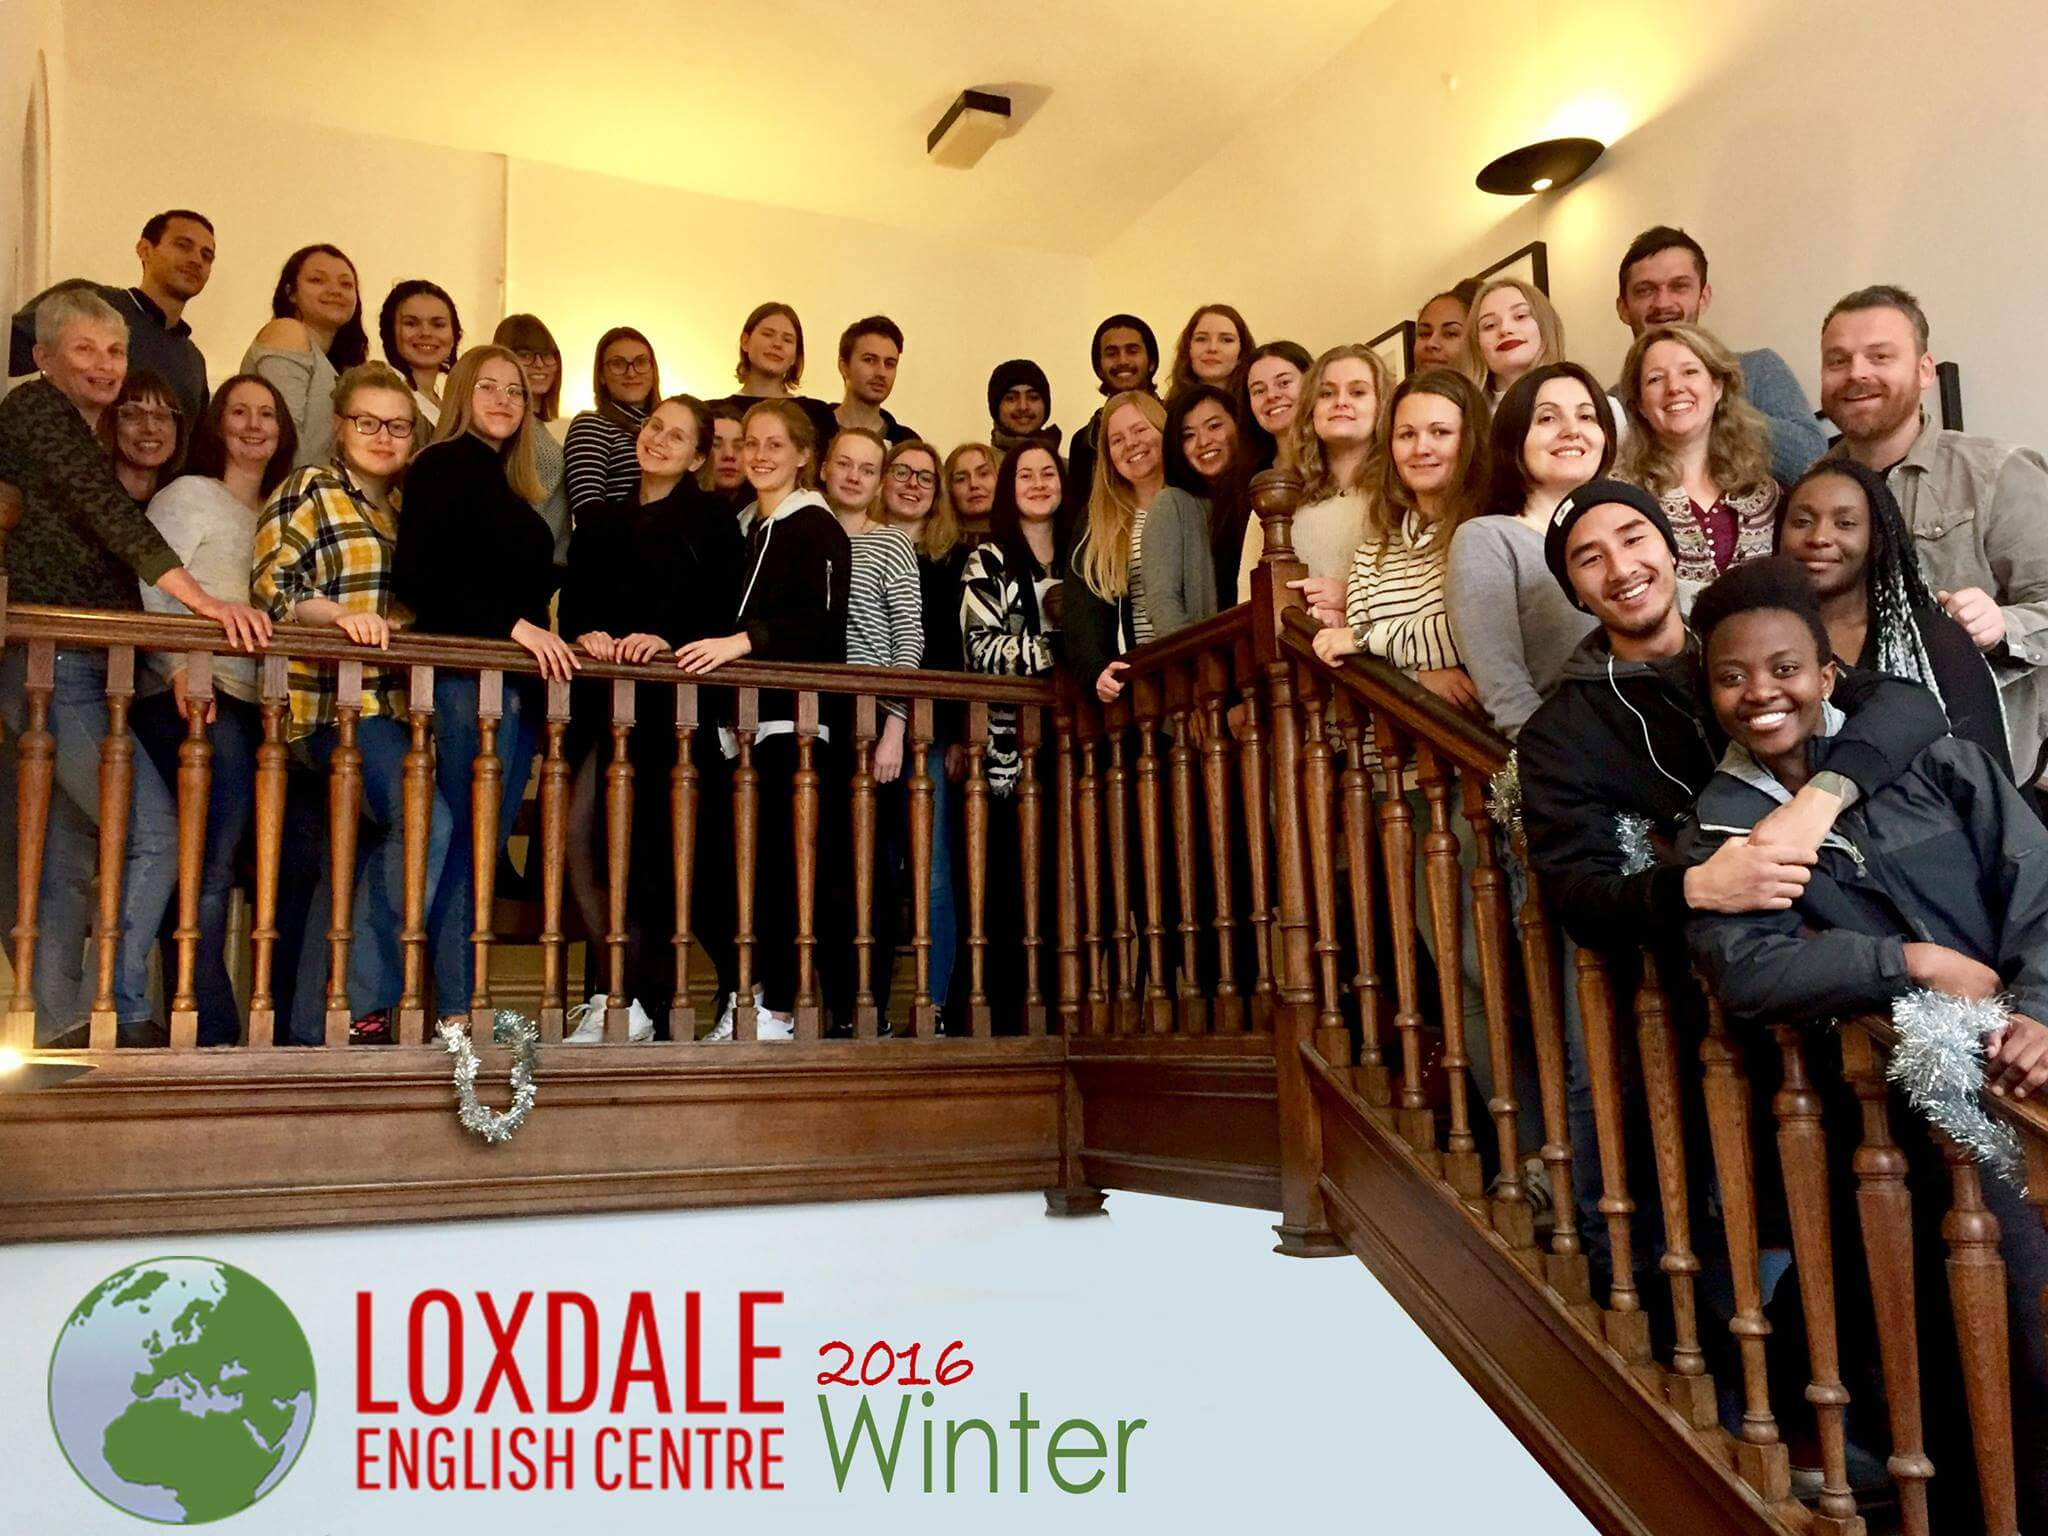 loxdale_students_winter_2016[1]